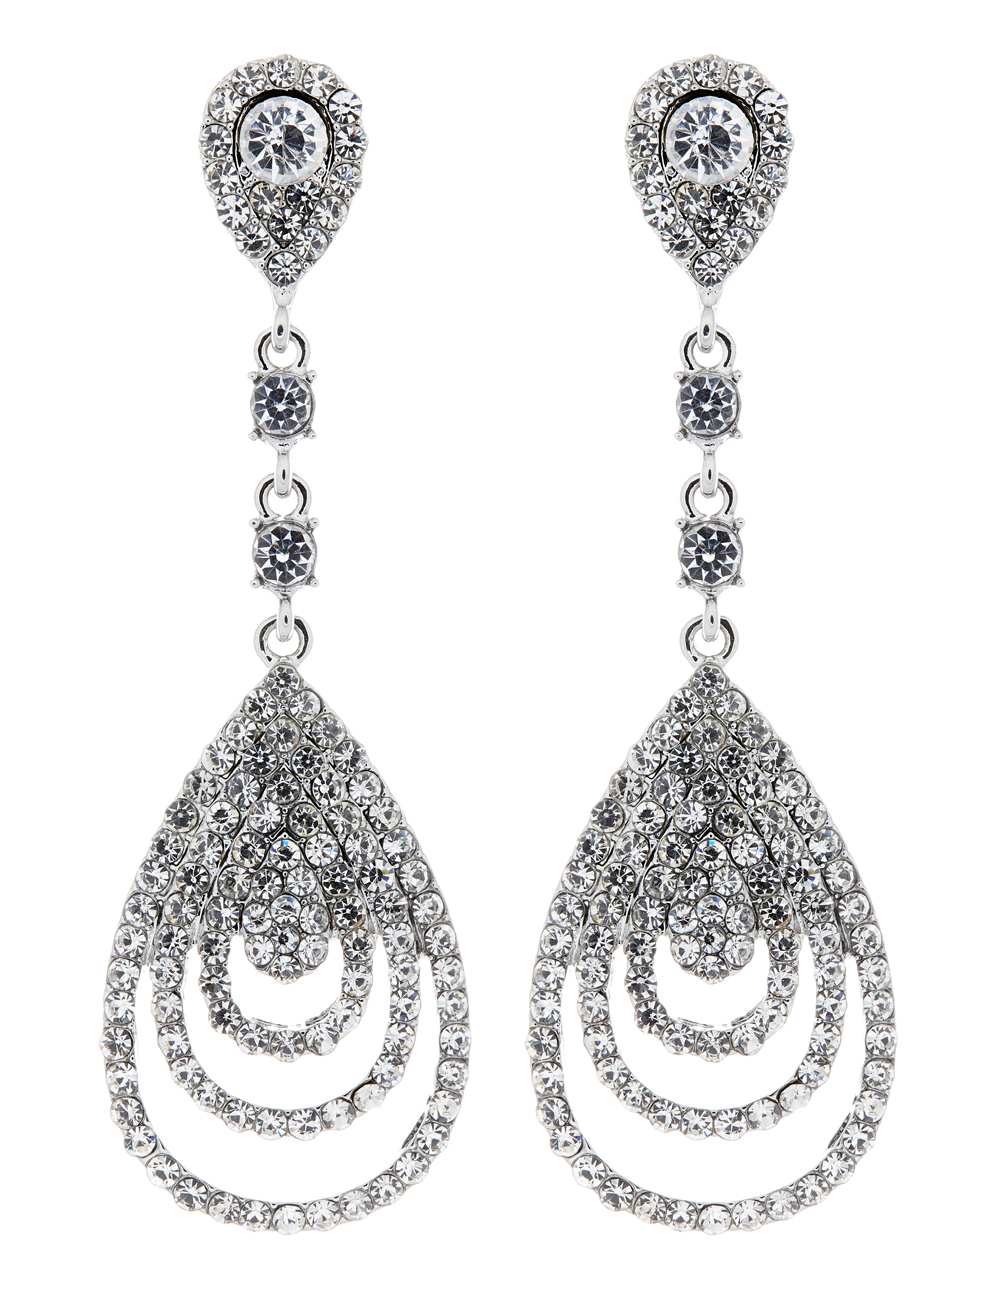 Clip On Earrings - Evita - silver luxury drop earring with a cubic zirconia stone and crystals